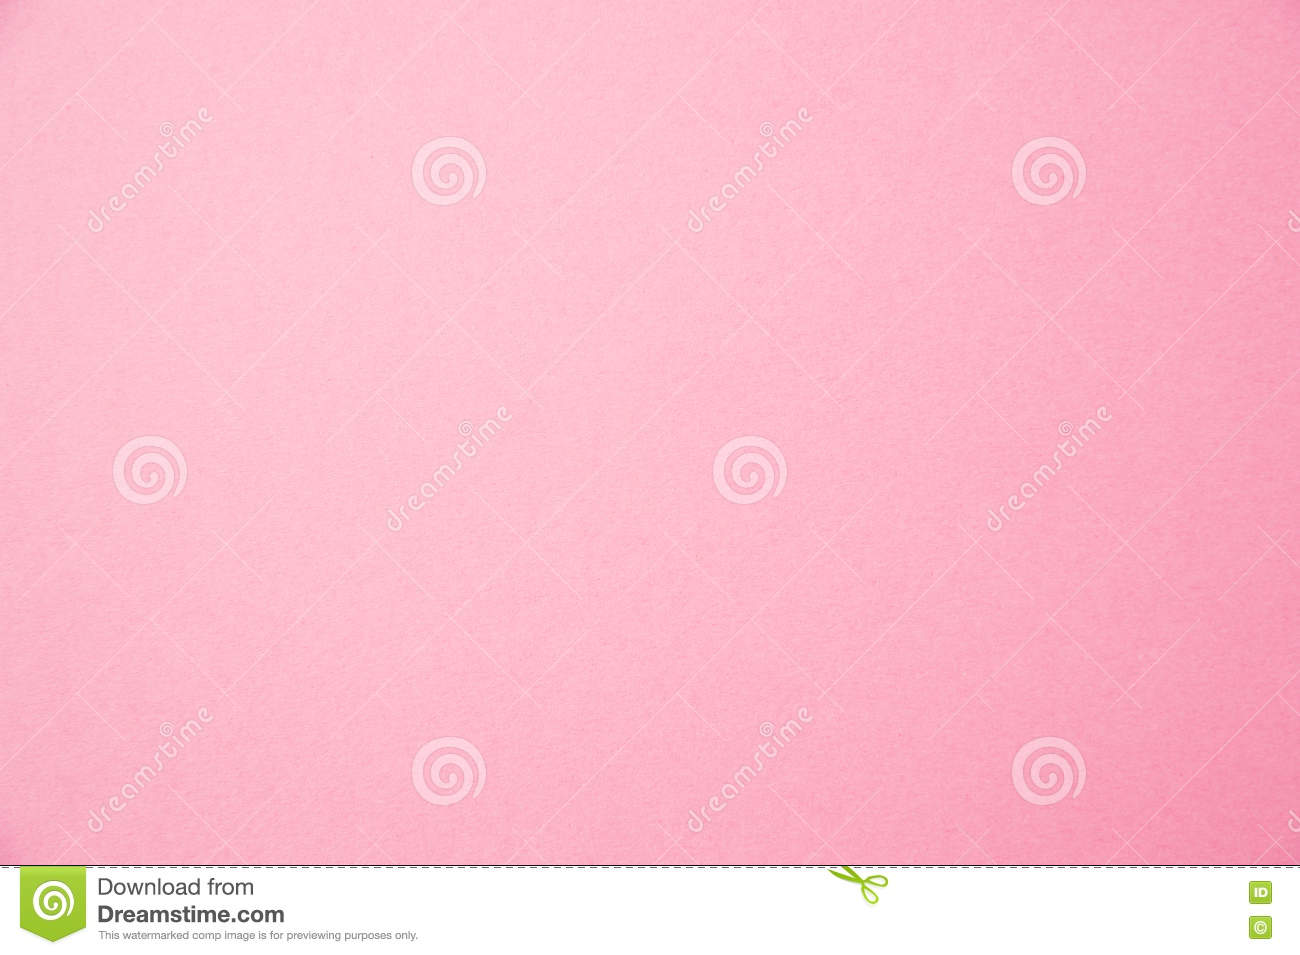 Jpg Texture Background Free Stock Photos Download 105 545: Light Pink Paper Texture Stock Photo. Image Of Abstract